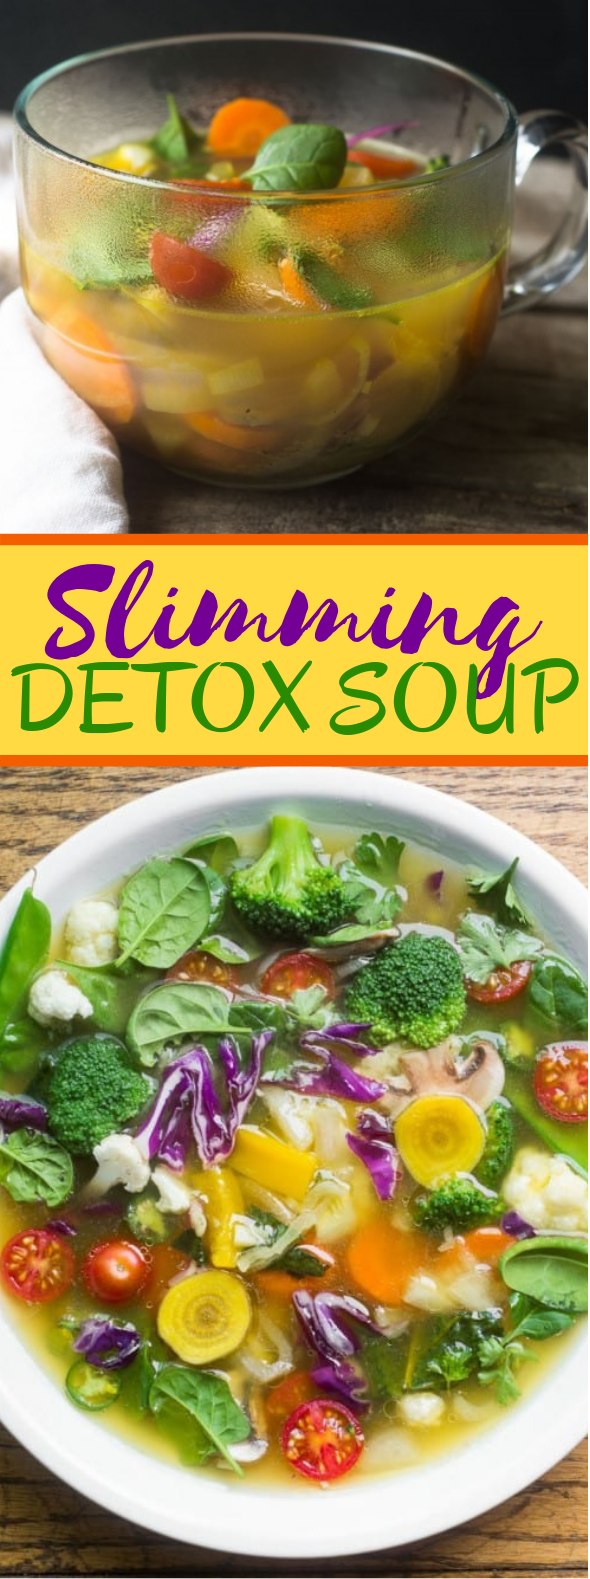 SLIMMING DETOX SOUP #diet #lowcarb